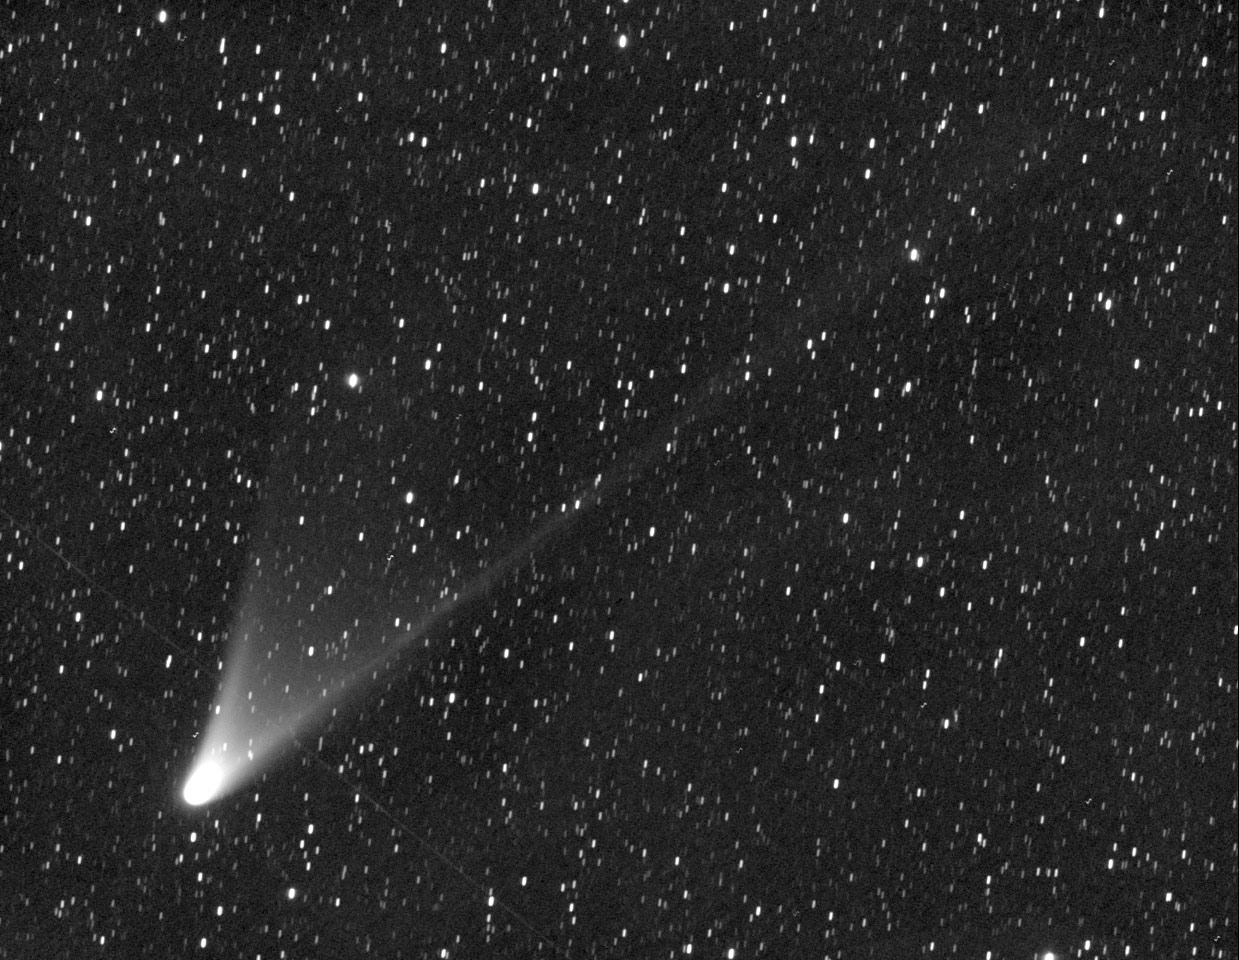 6 Fun Facts About Comet Pan-STARRS